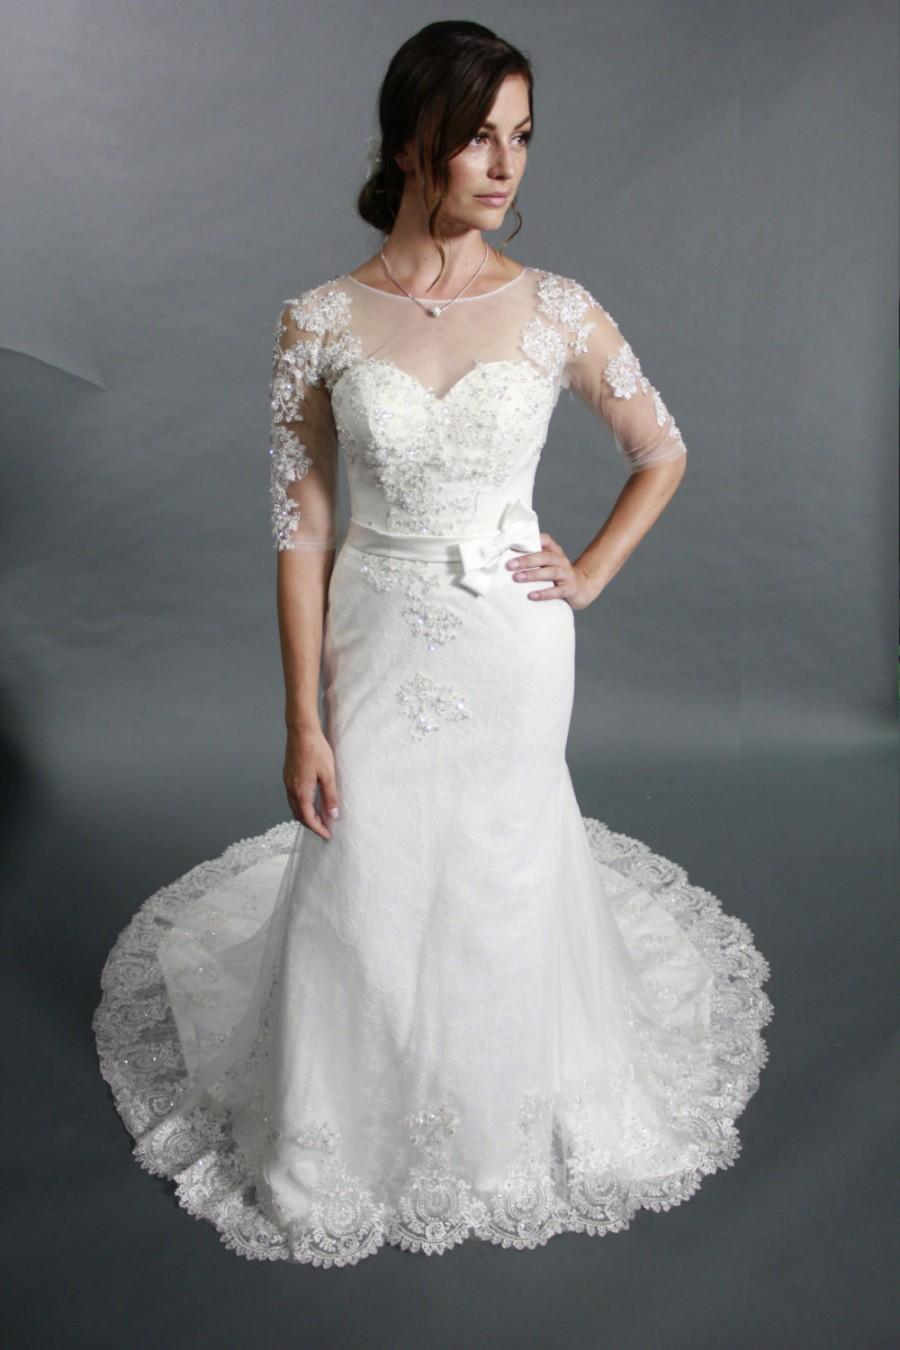 Wedding - Elegant mermaid half sleeves scoop neck embroidered lace beadings with crystal beads wedding dress bridal gown